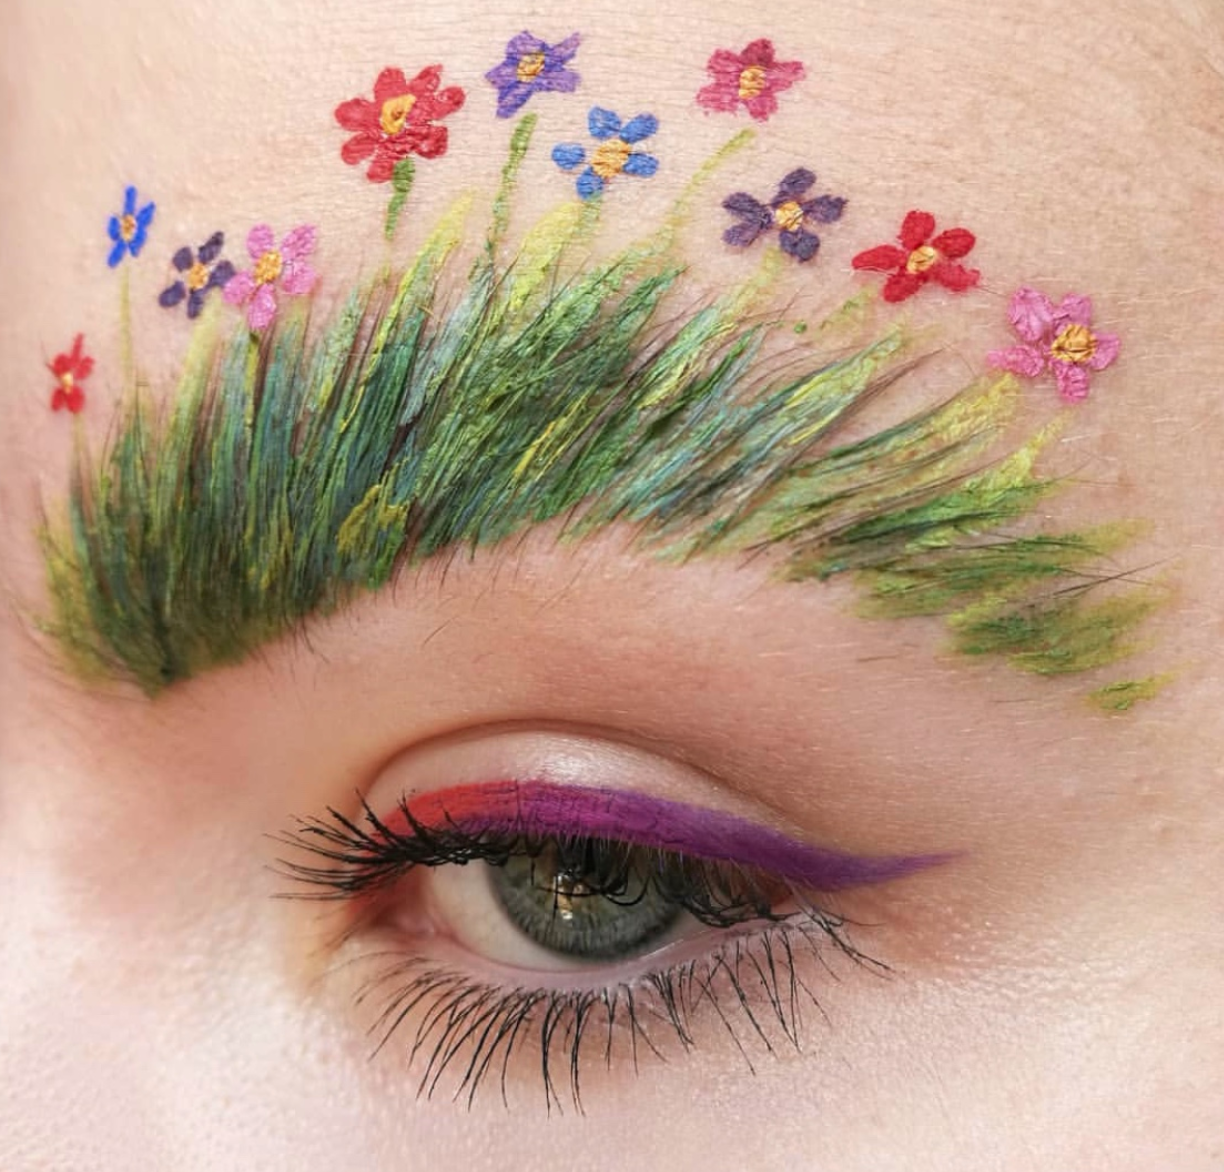 Festival brows by @krabowinka -